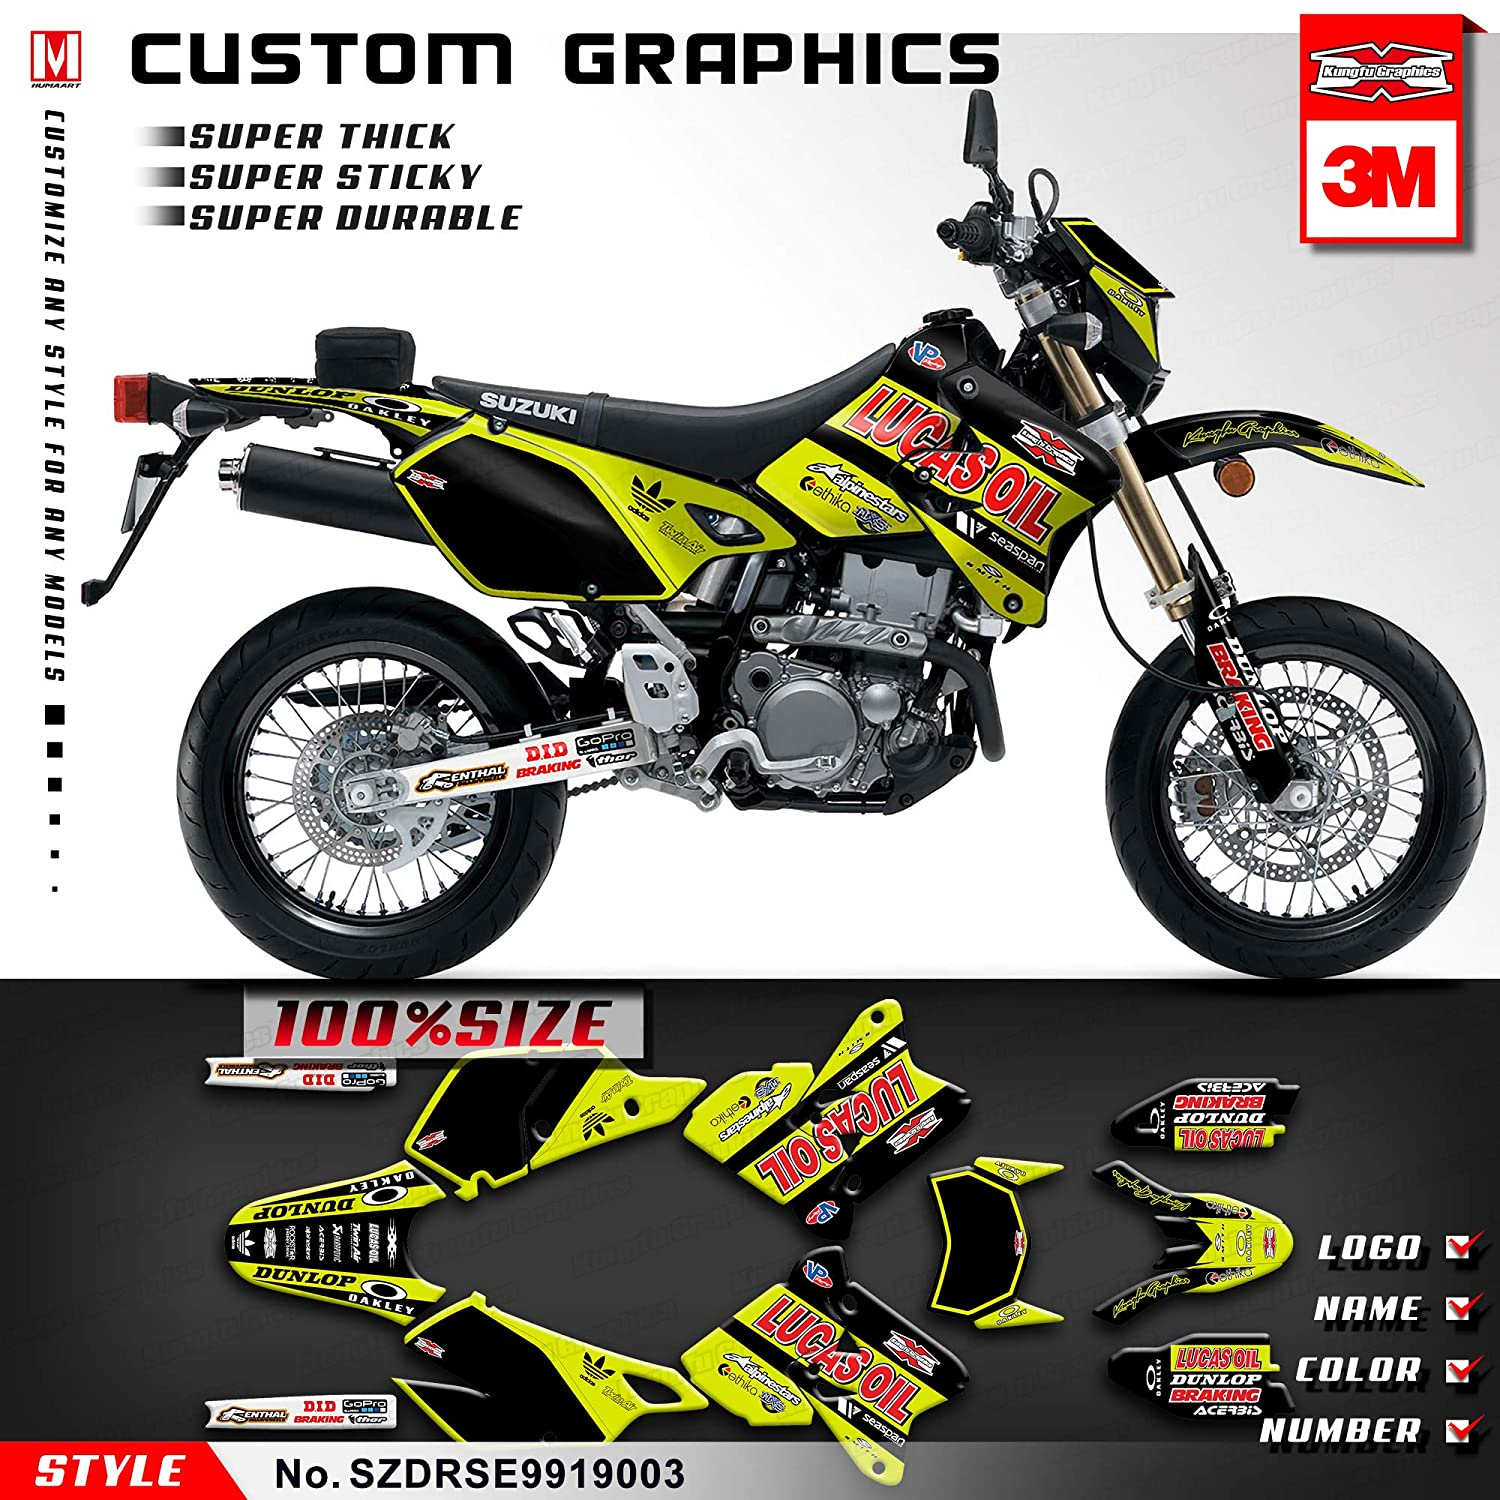 Kungfu Graphics Lucas Oil Custom Decal Kit for Suzuki DRZ400SM Supermoto 1999 2000 2001 2002 2003 2004 2005 2006 2007 2008 2009 2010 2011 2012 2013 2014 2015 2016 2017 2018 2019 Yellow